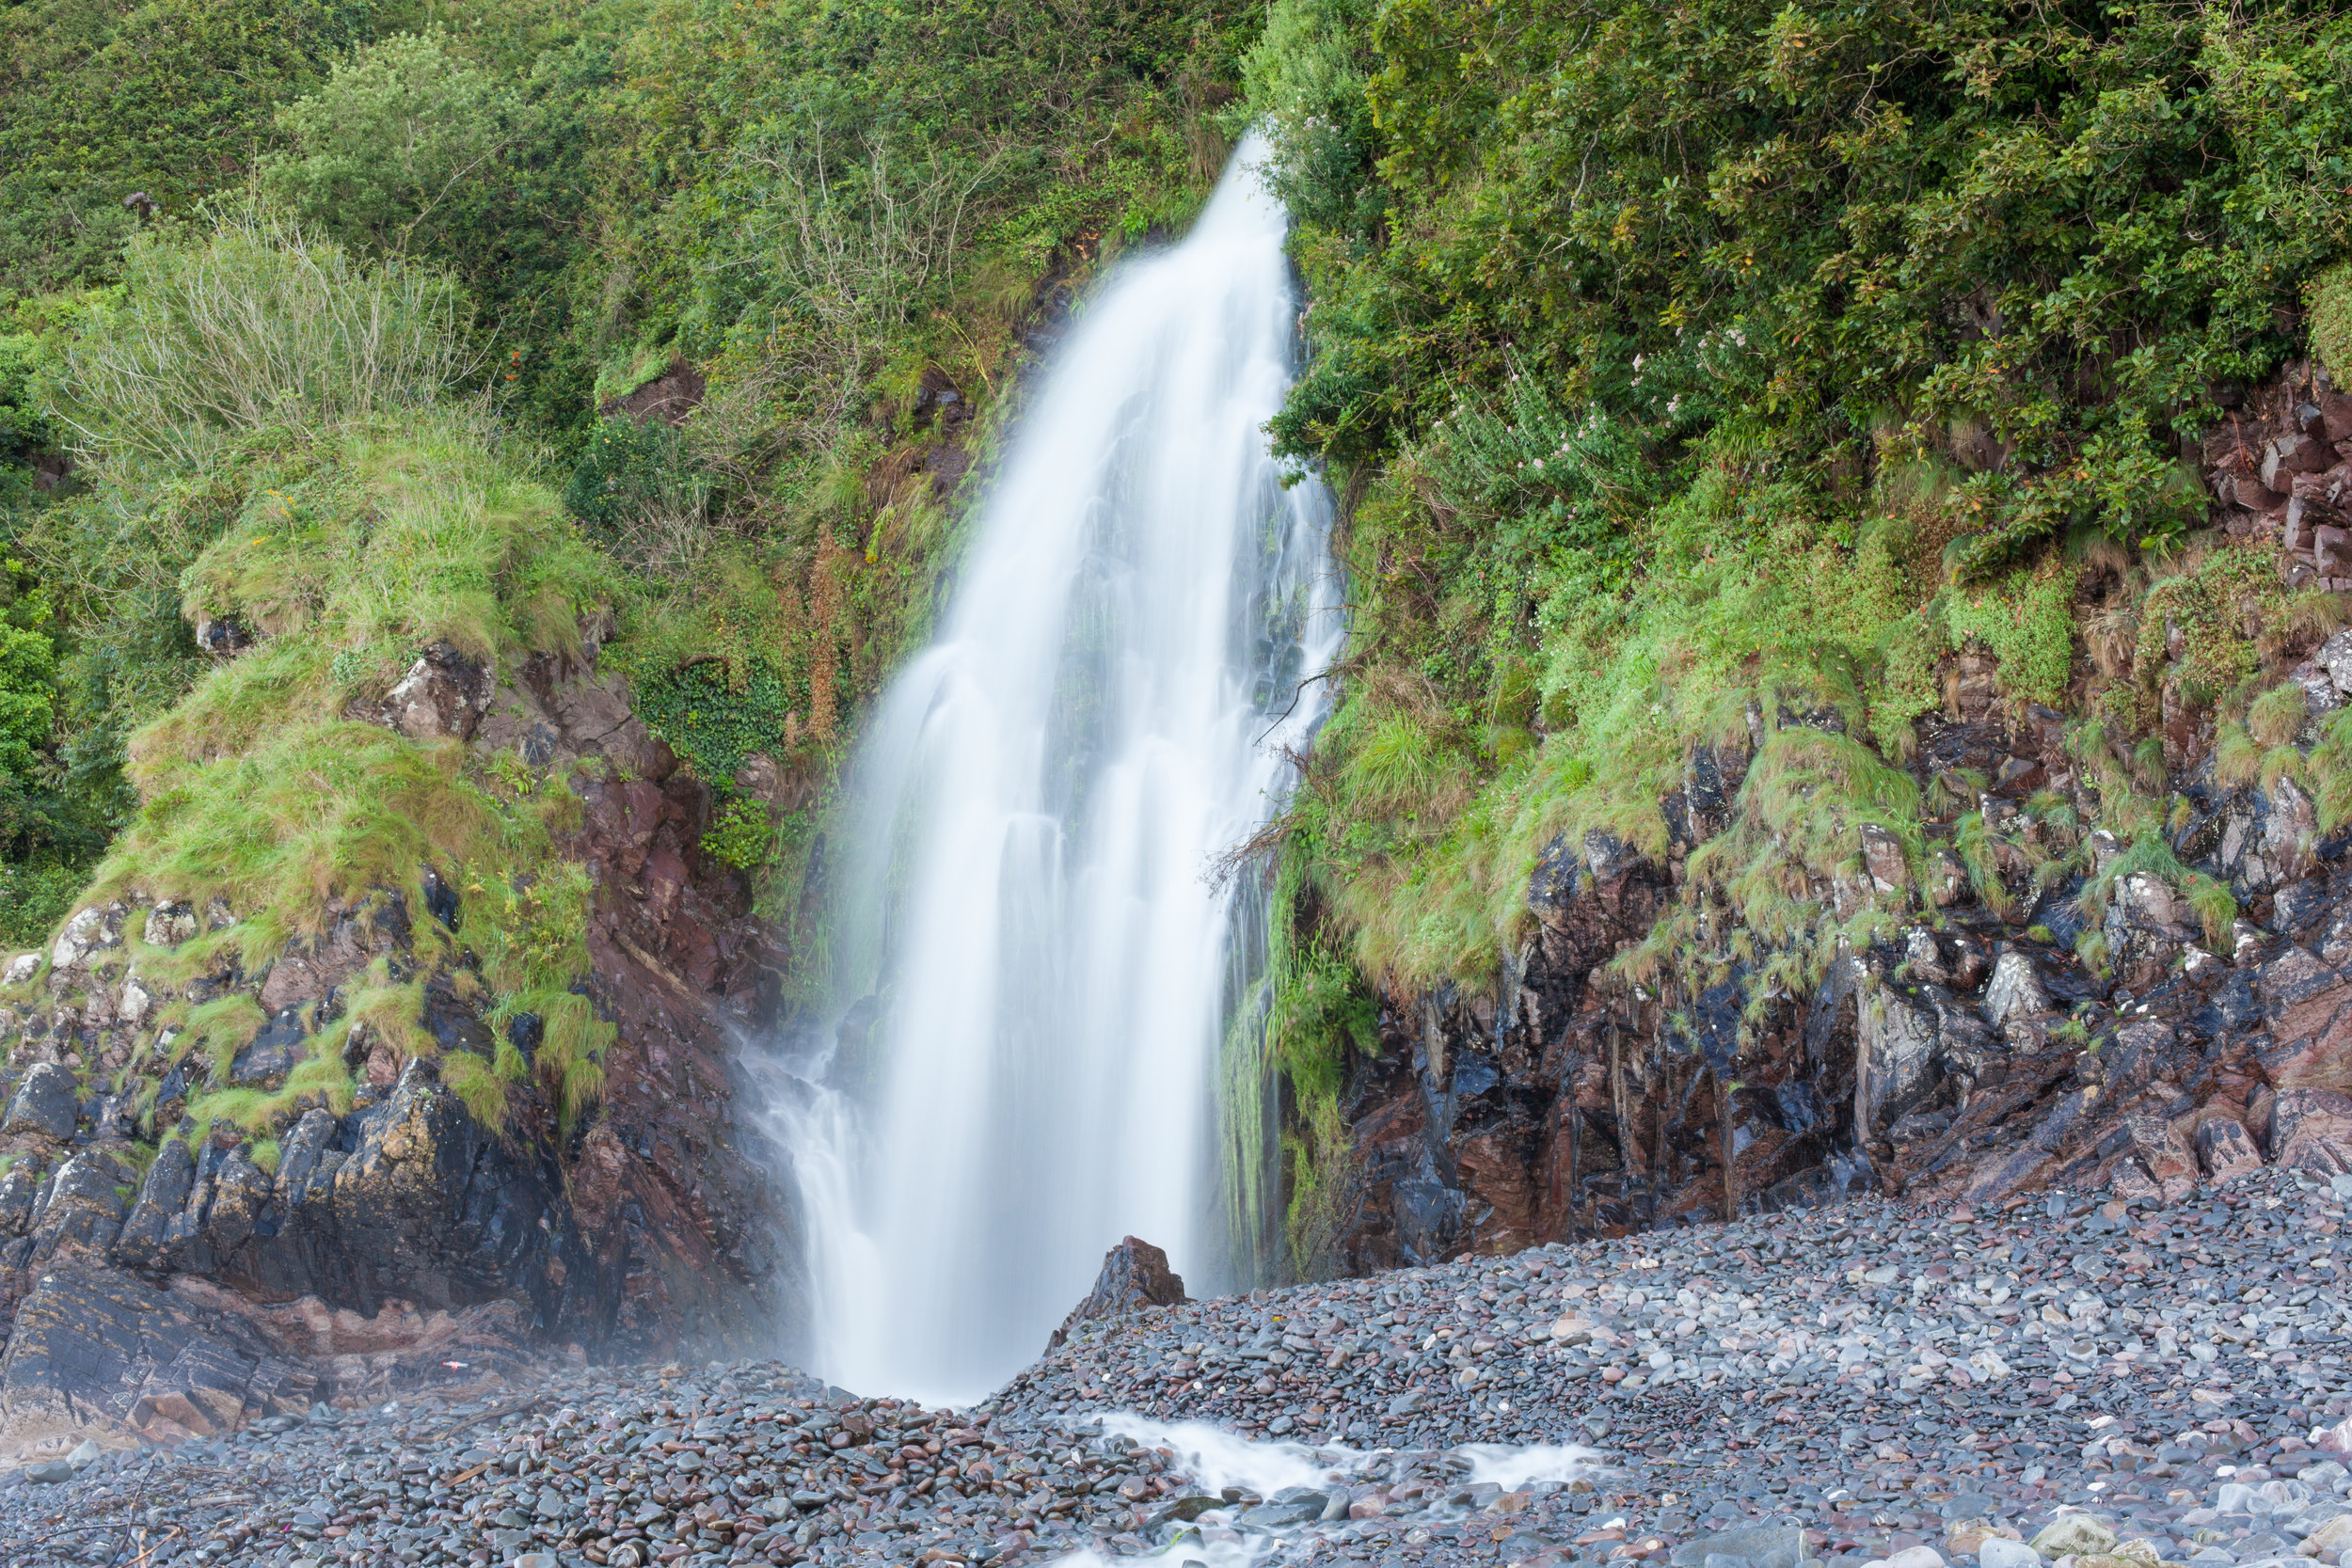 A waterfall at Clovelly Beach in Devon.